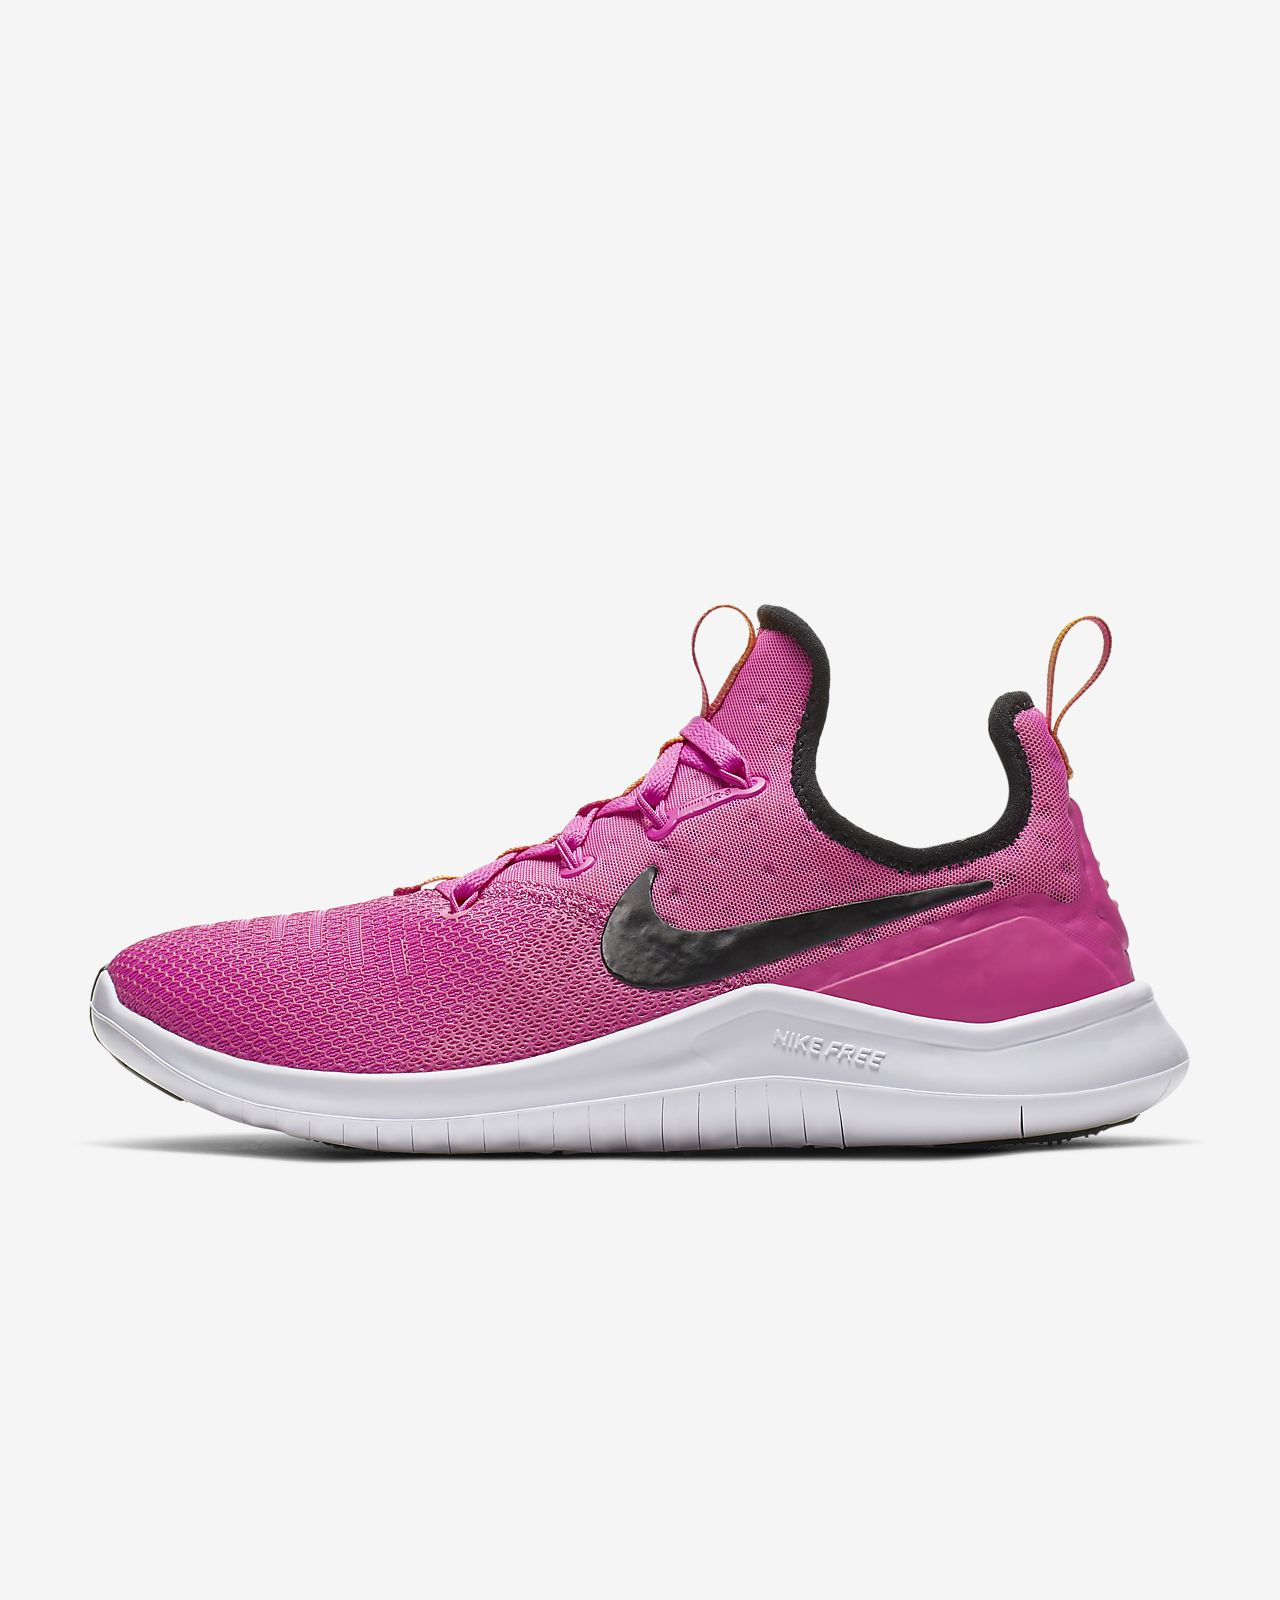 22ed628d5308 Nike Free TR8 Women s Gym HIIT Cross Training Shoe. Nike.com